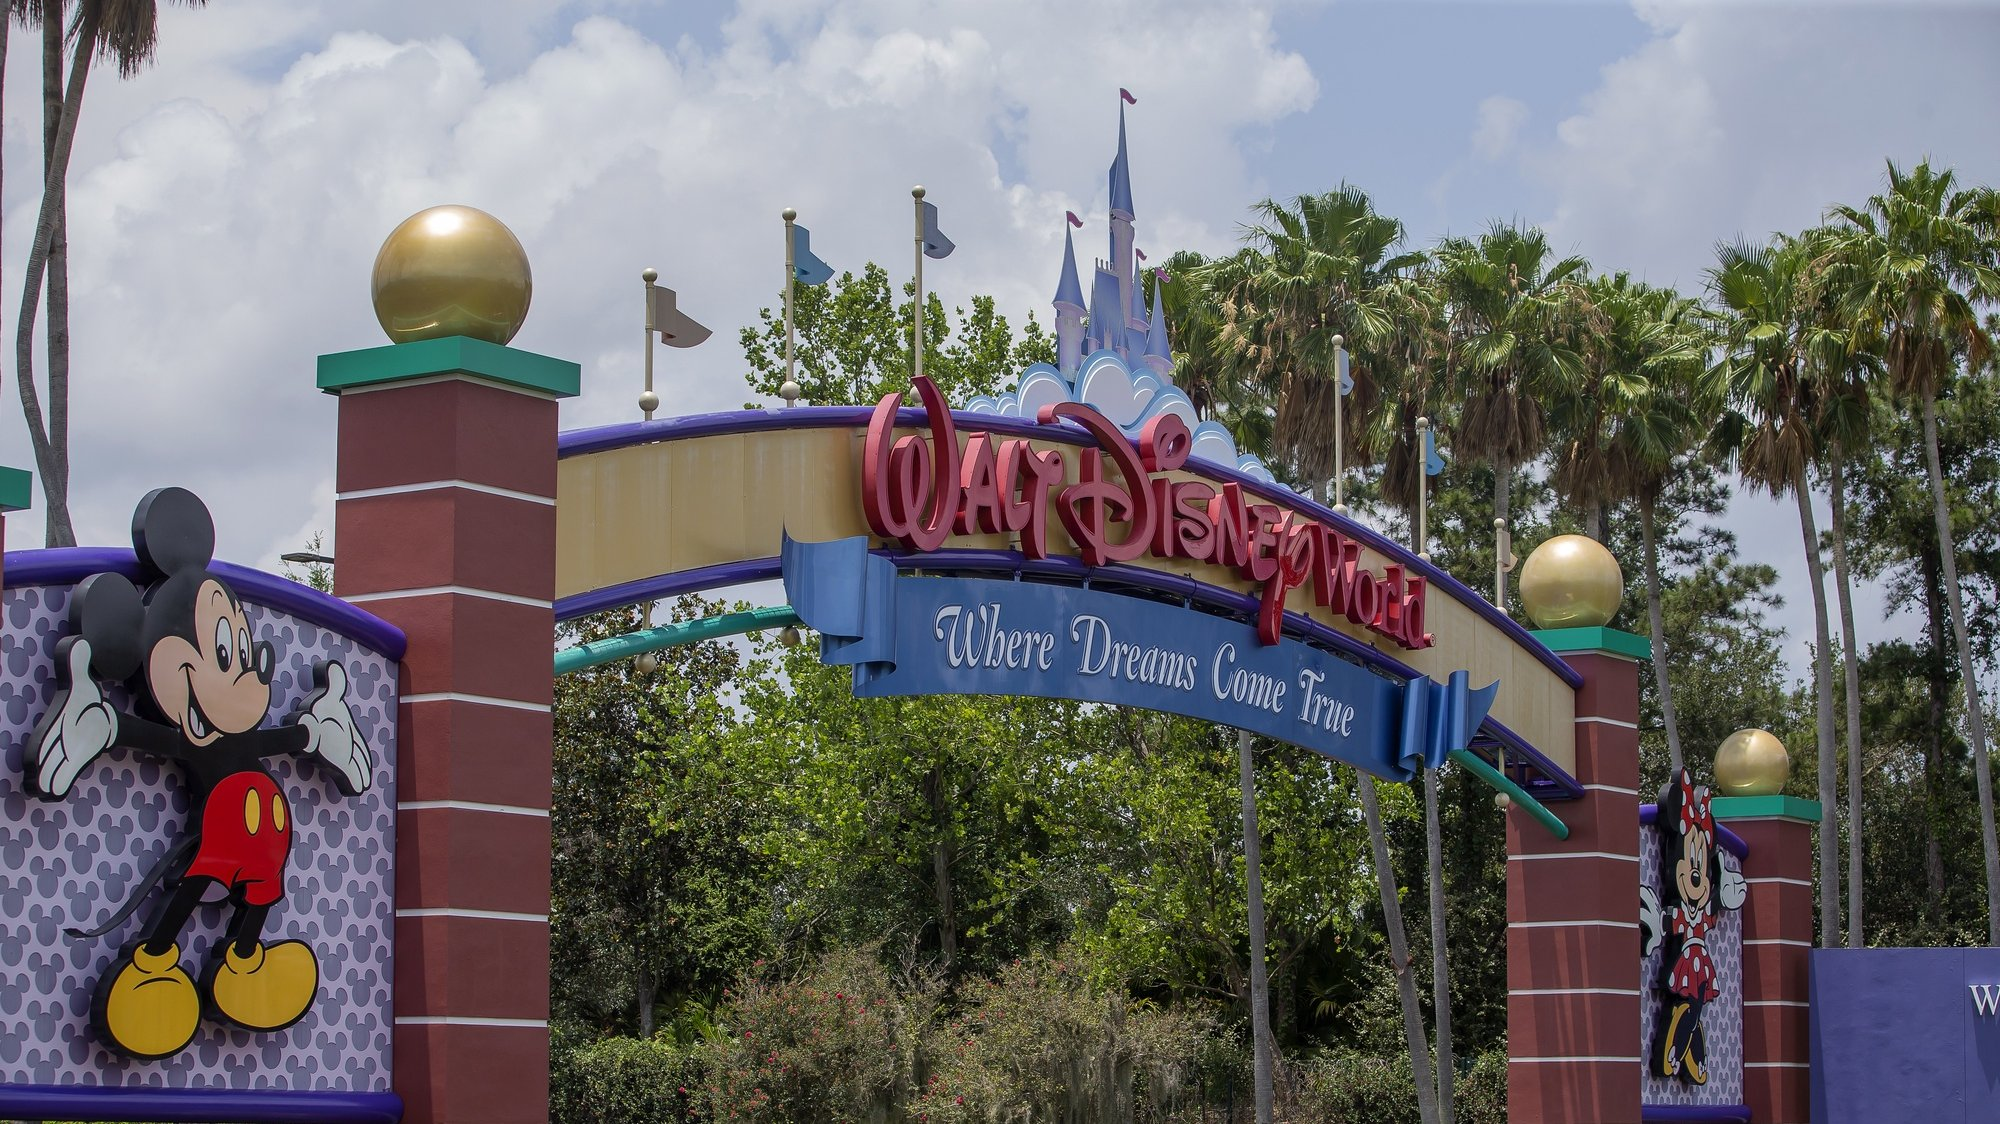 epa08843708 (FILE) - The main entrance to the Walt Disney World Resort of theme parks outside of Orlando, Florida, USA, 28 May 2020 (reissued 26 November 2020). Walt Disney Co, struggling with dwindling numbers of visitors due to Coronavirus, stated 26 November 2020 the company would reduce their workforce and cut some 32,000 jobs within the first six months in 2021. The new total of 32,000 job cuts includes the 28,000 job cuts the company announced in September 2020. Most of the job will be lost at Disney's theme parks.  EPA/ERIK S. LESSER *** Local Caption *** 56115975